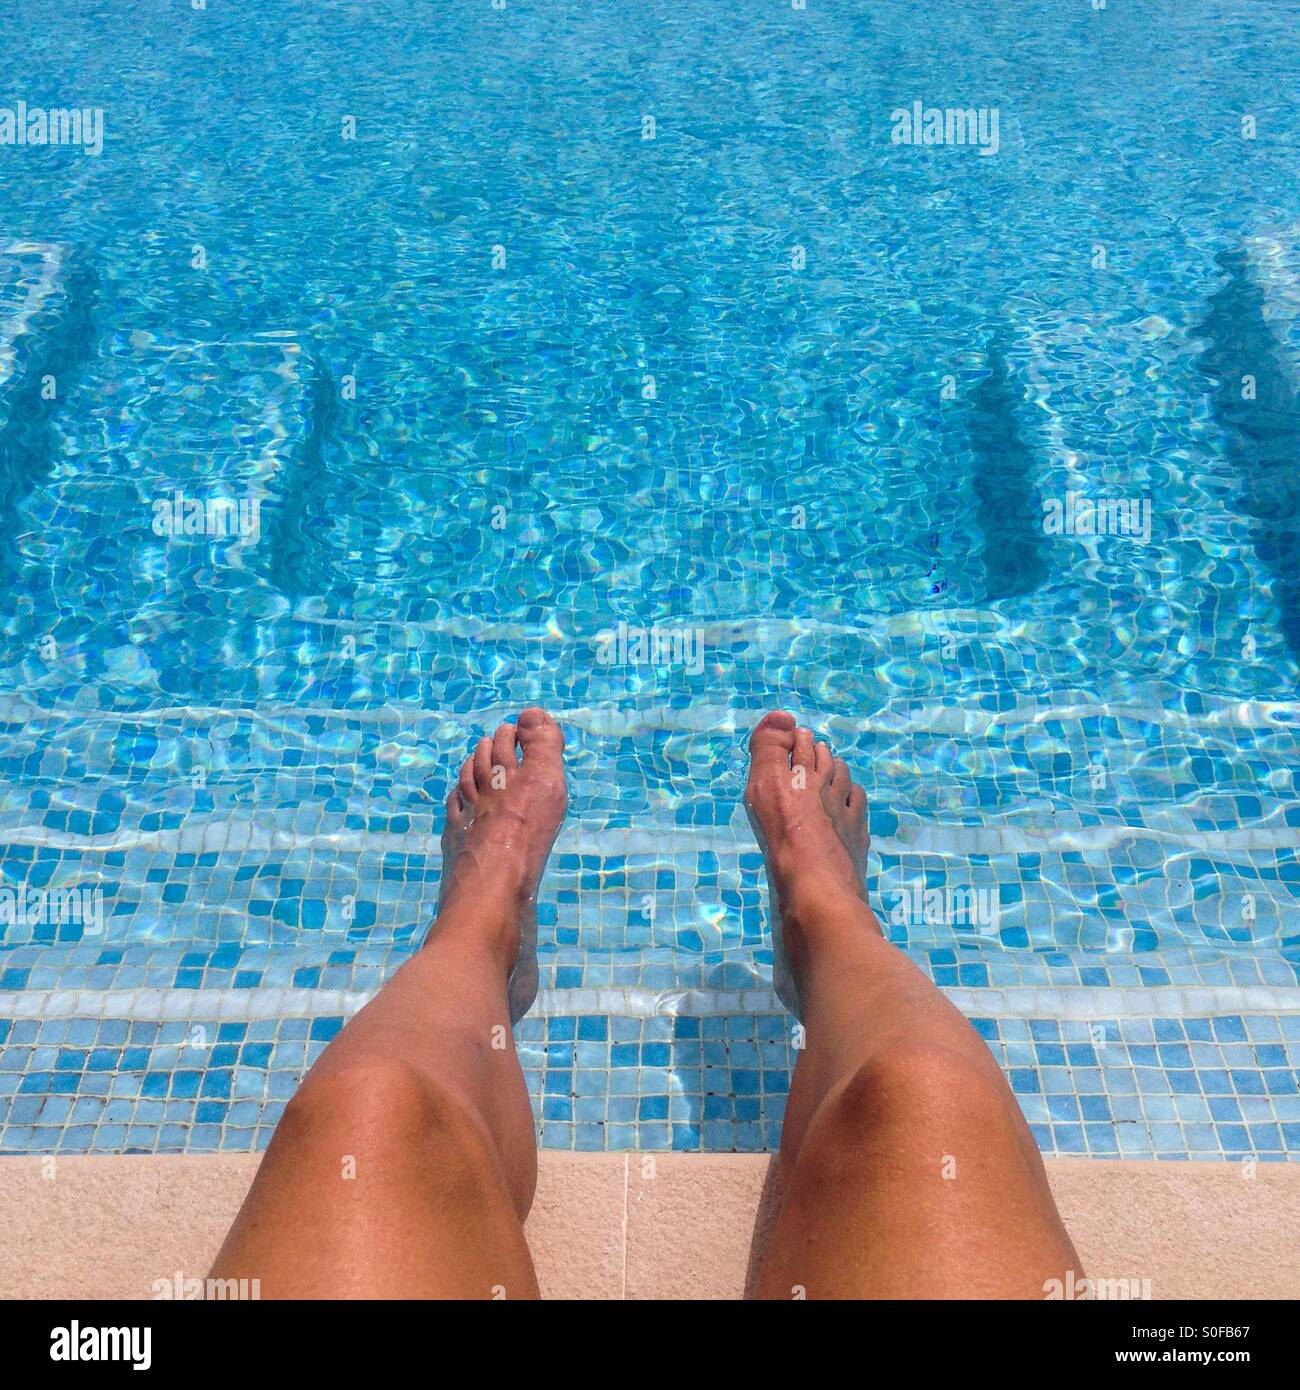 Feet and legs on a swimming pool with a square shape of steps - Stock Image